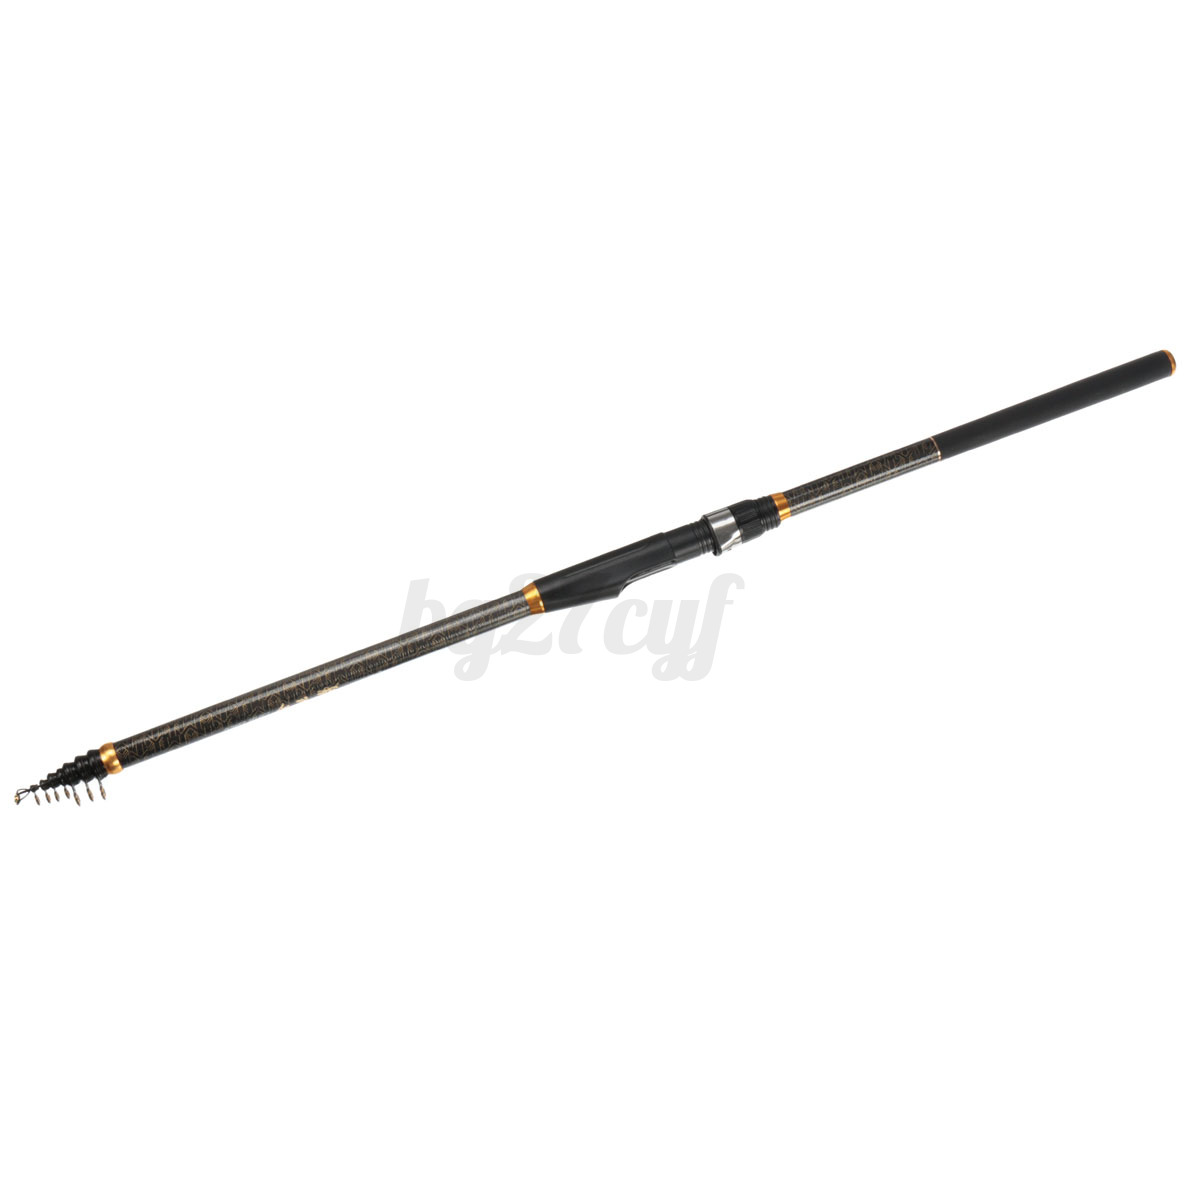 Carbon fiber fishing rods telescopic casting for Telescoping fishing pole